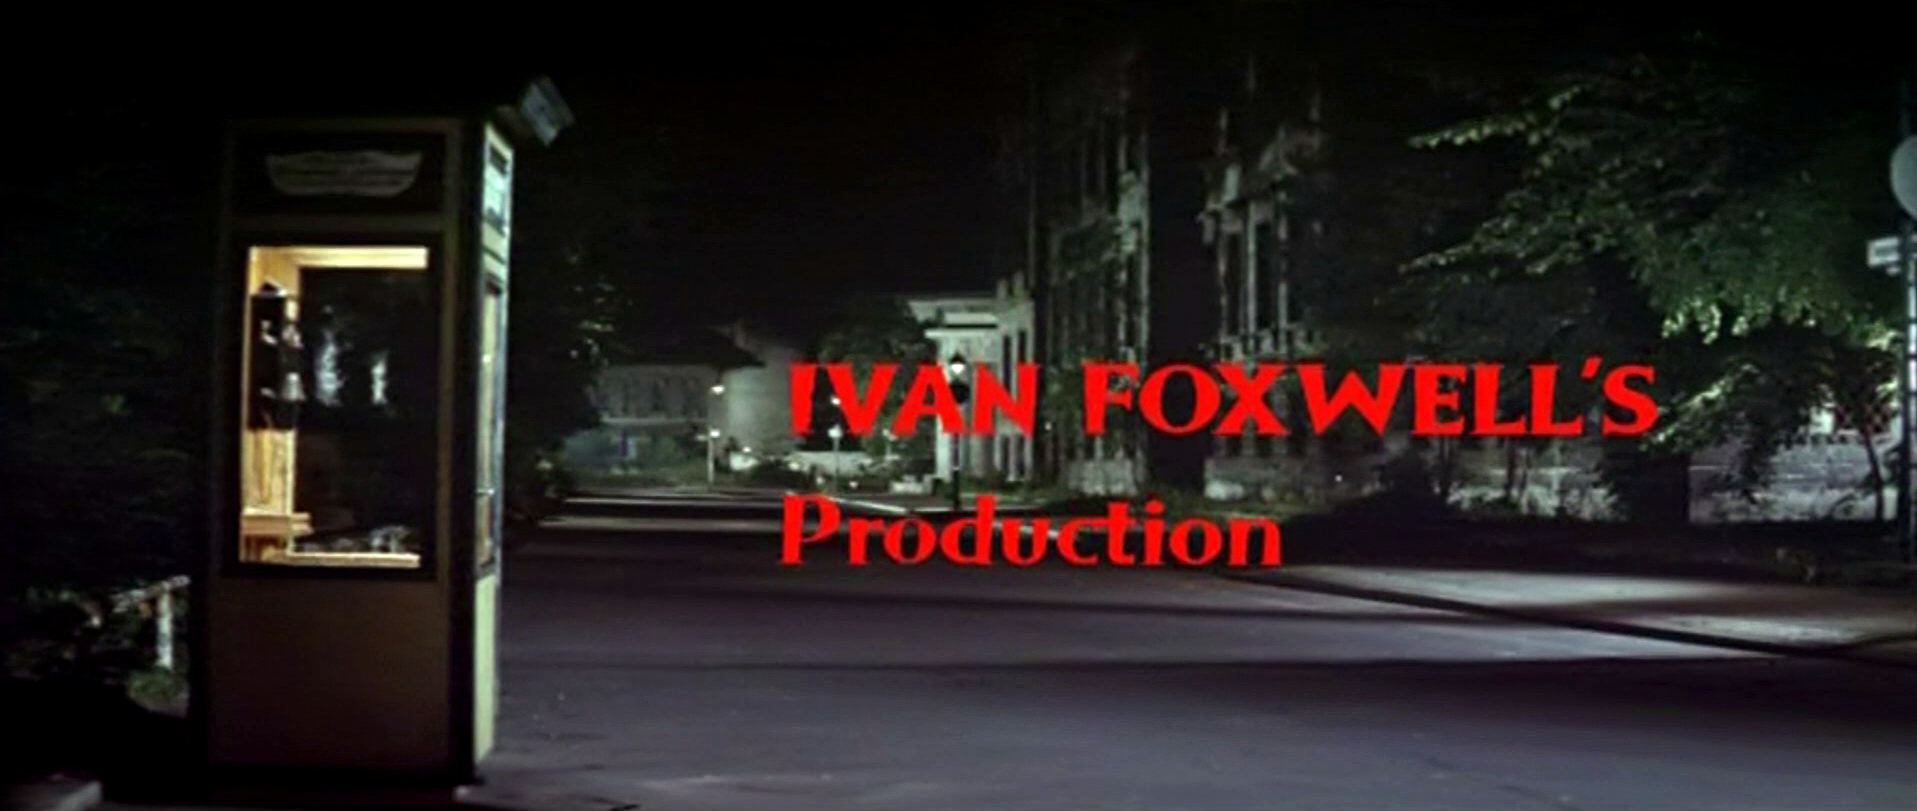 Main title from The Quiller Memorandum (1966) (2). Ivan Foxwell's production